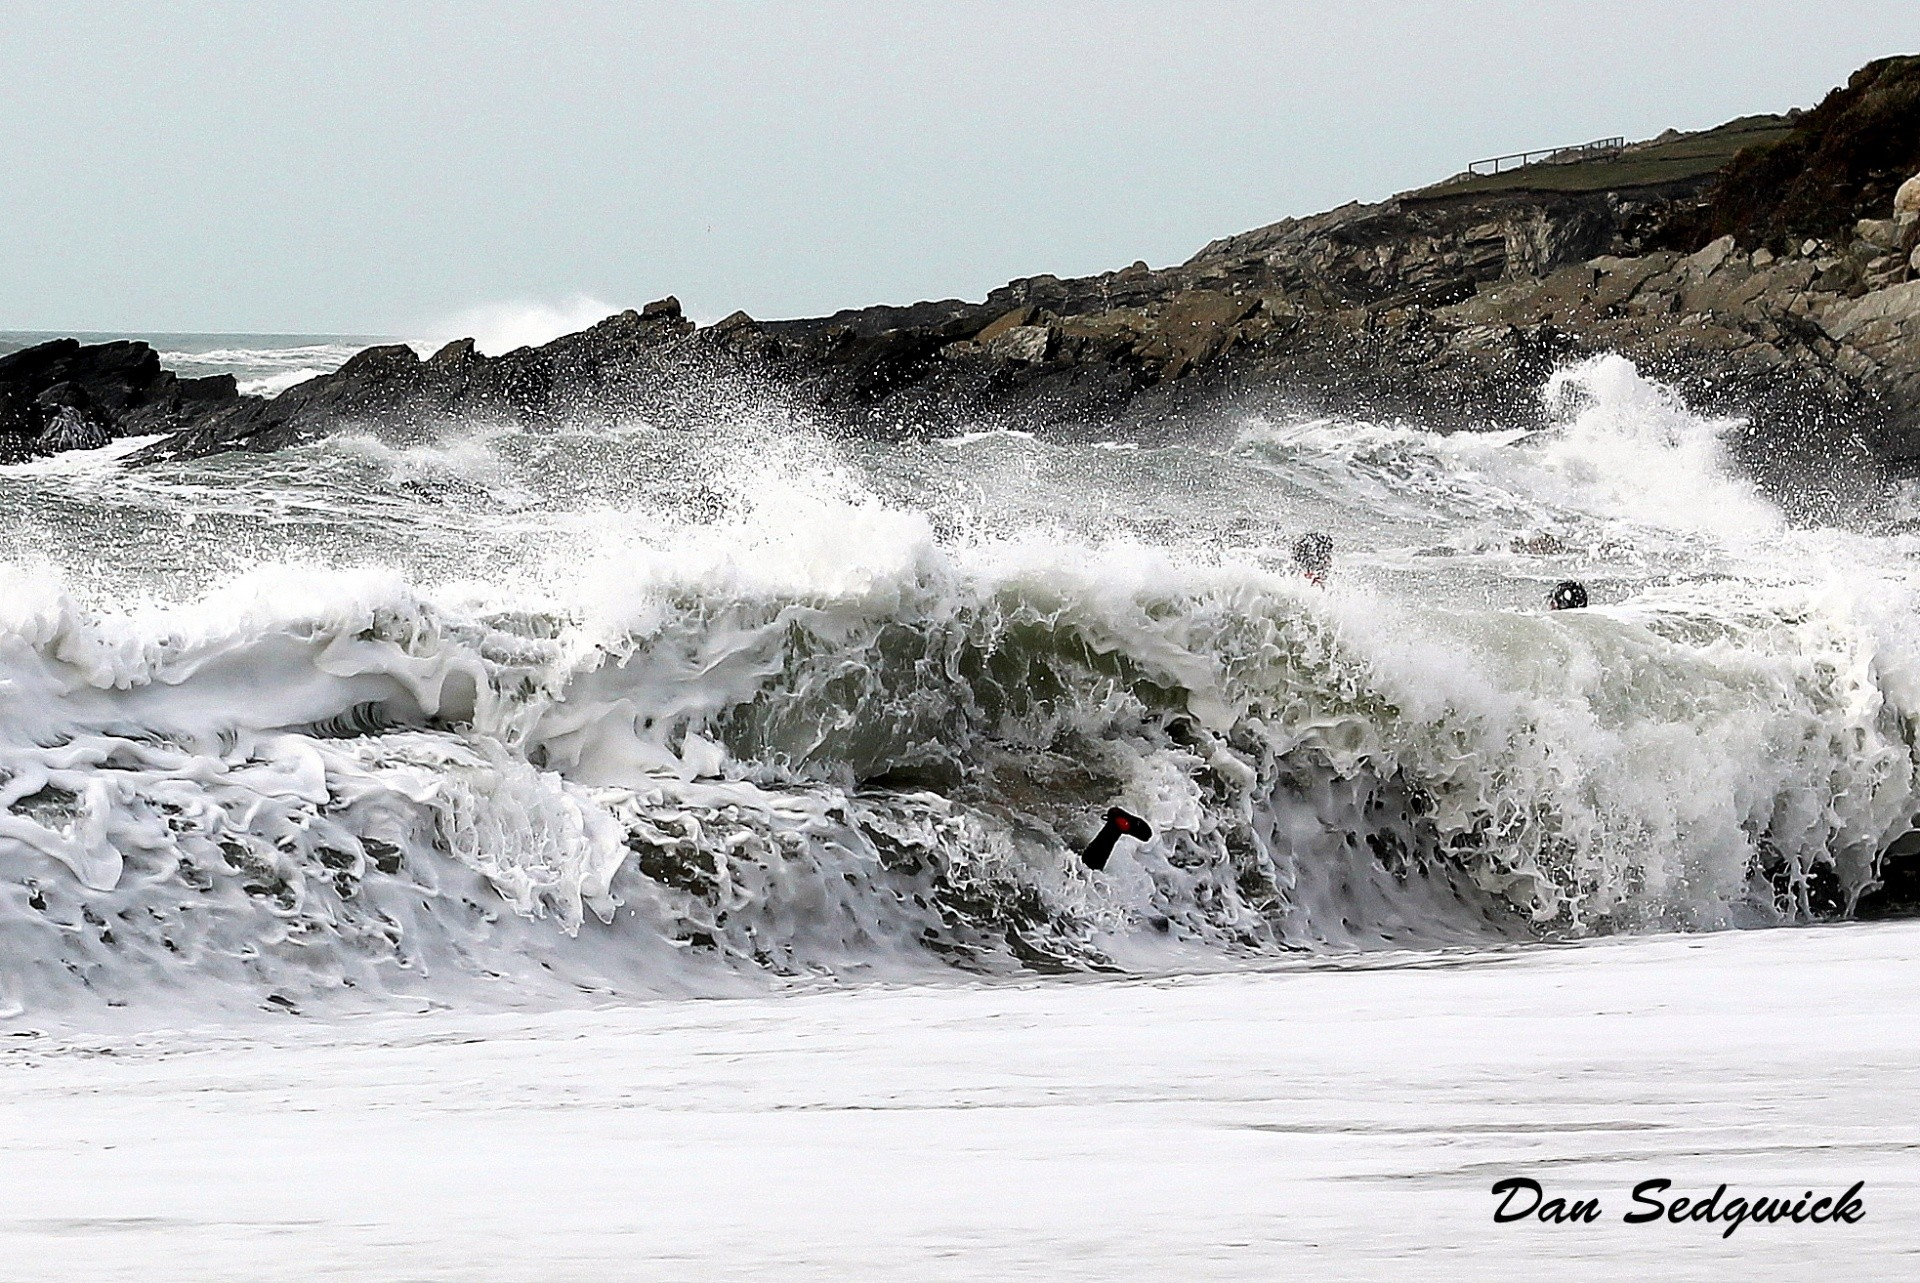 Dan Sedgwick's photo of Newquay - Fistral North